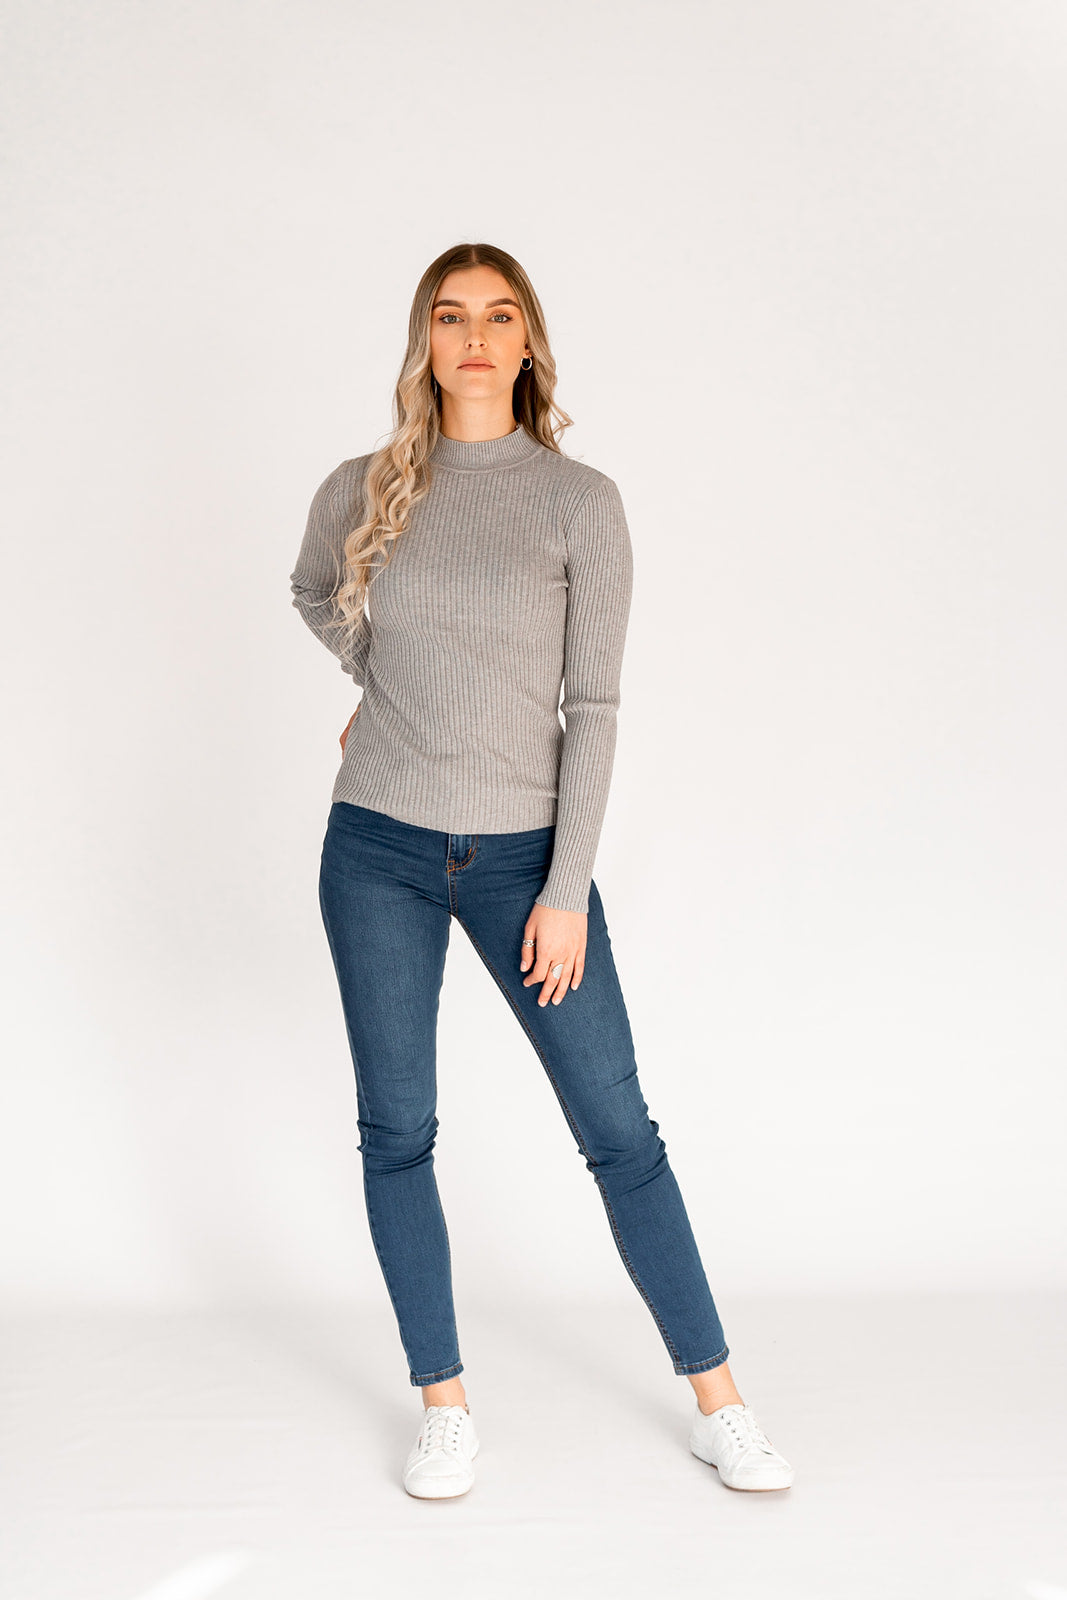 AVIVA RIBBED TOP - GREY